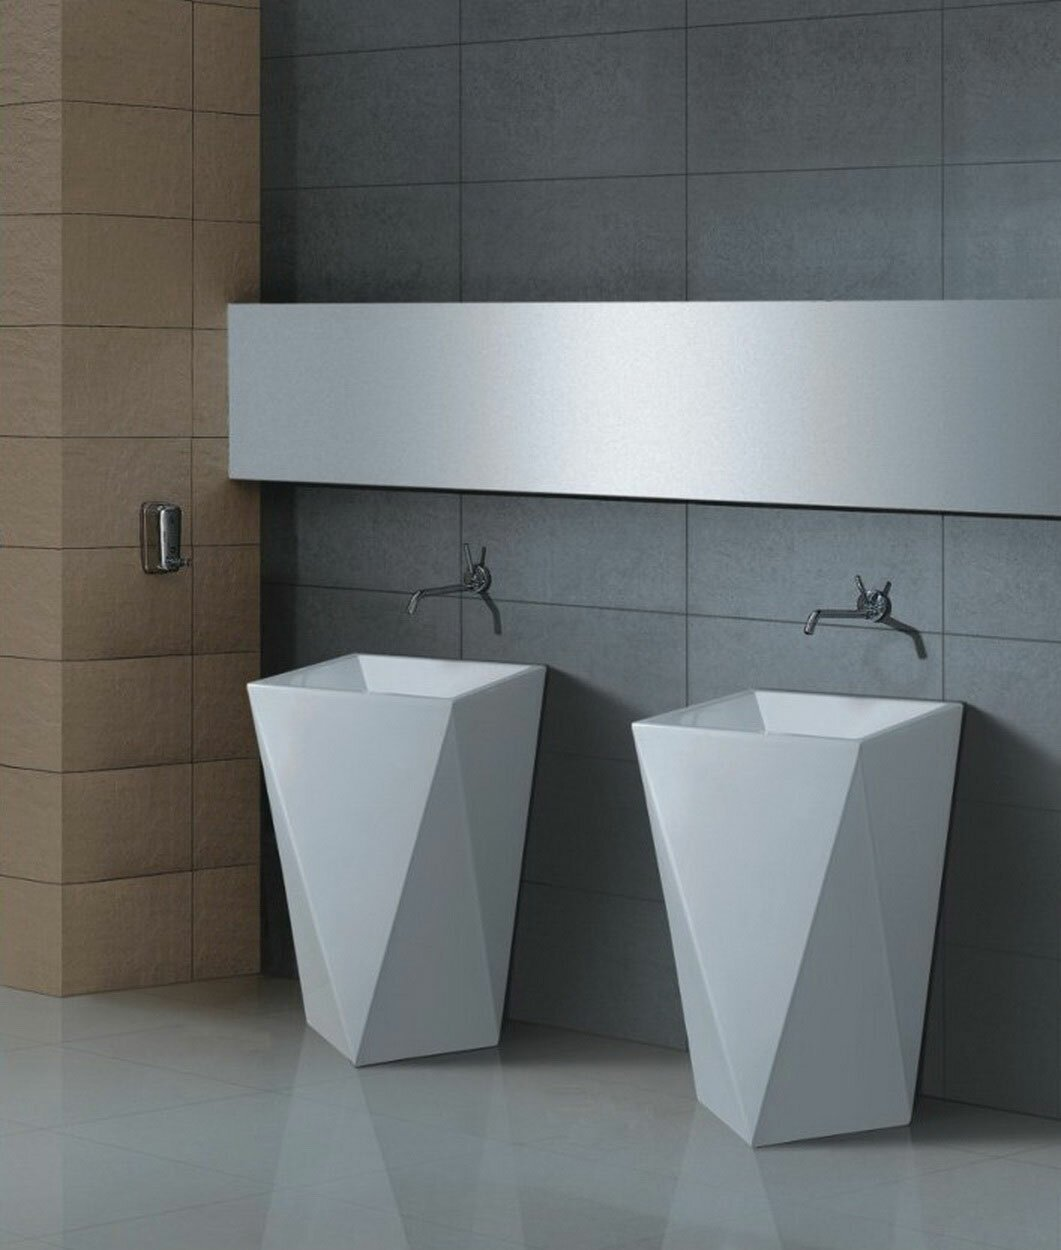 Top 15 bathroom sink designs and models mostbeautifulthings for Bathroom sinks designs